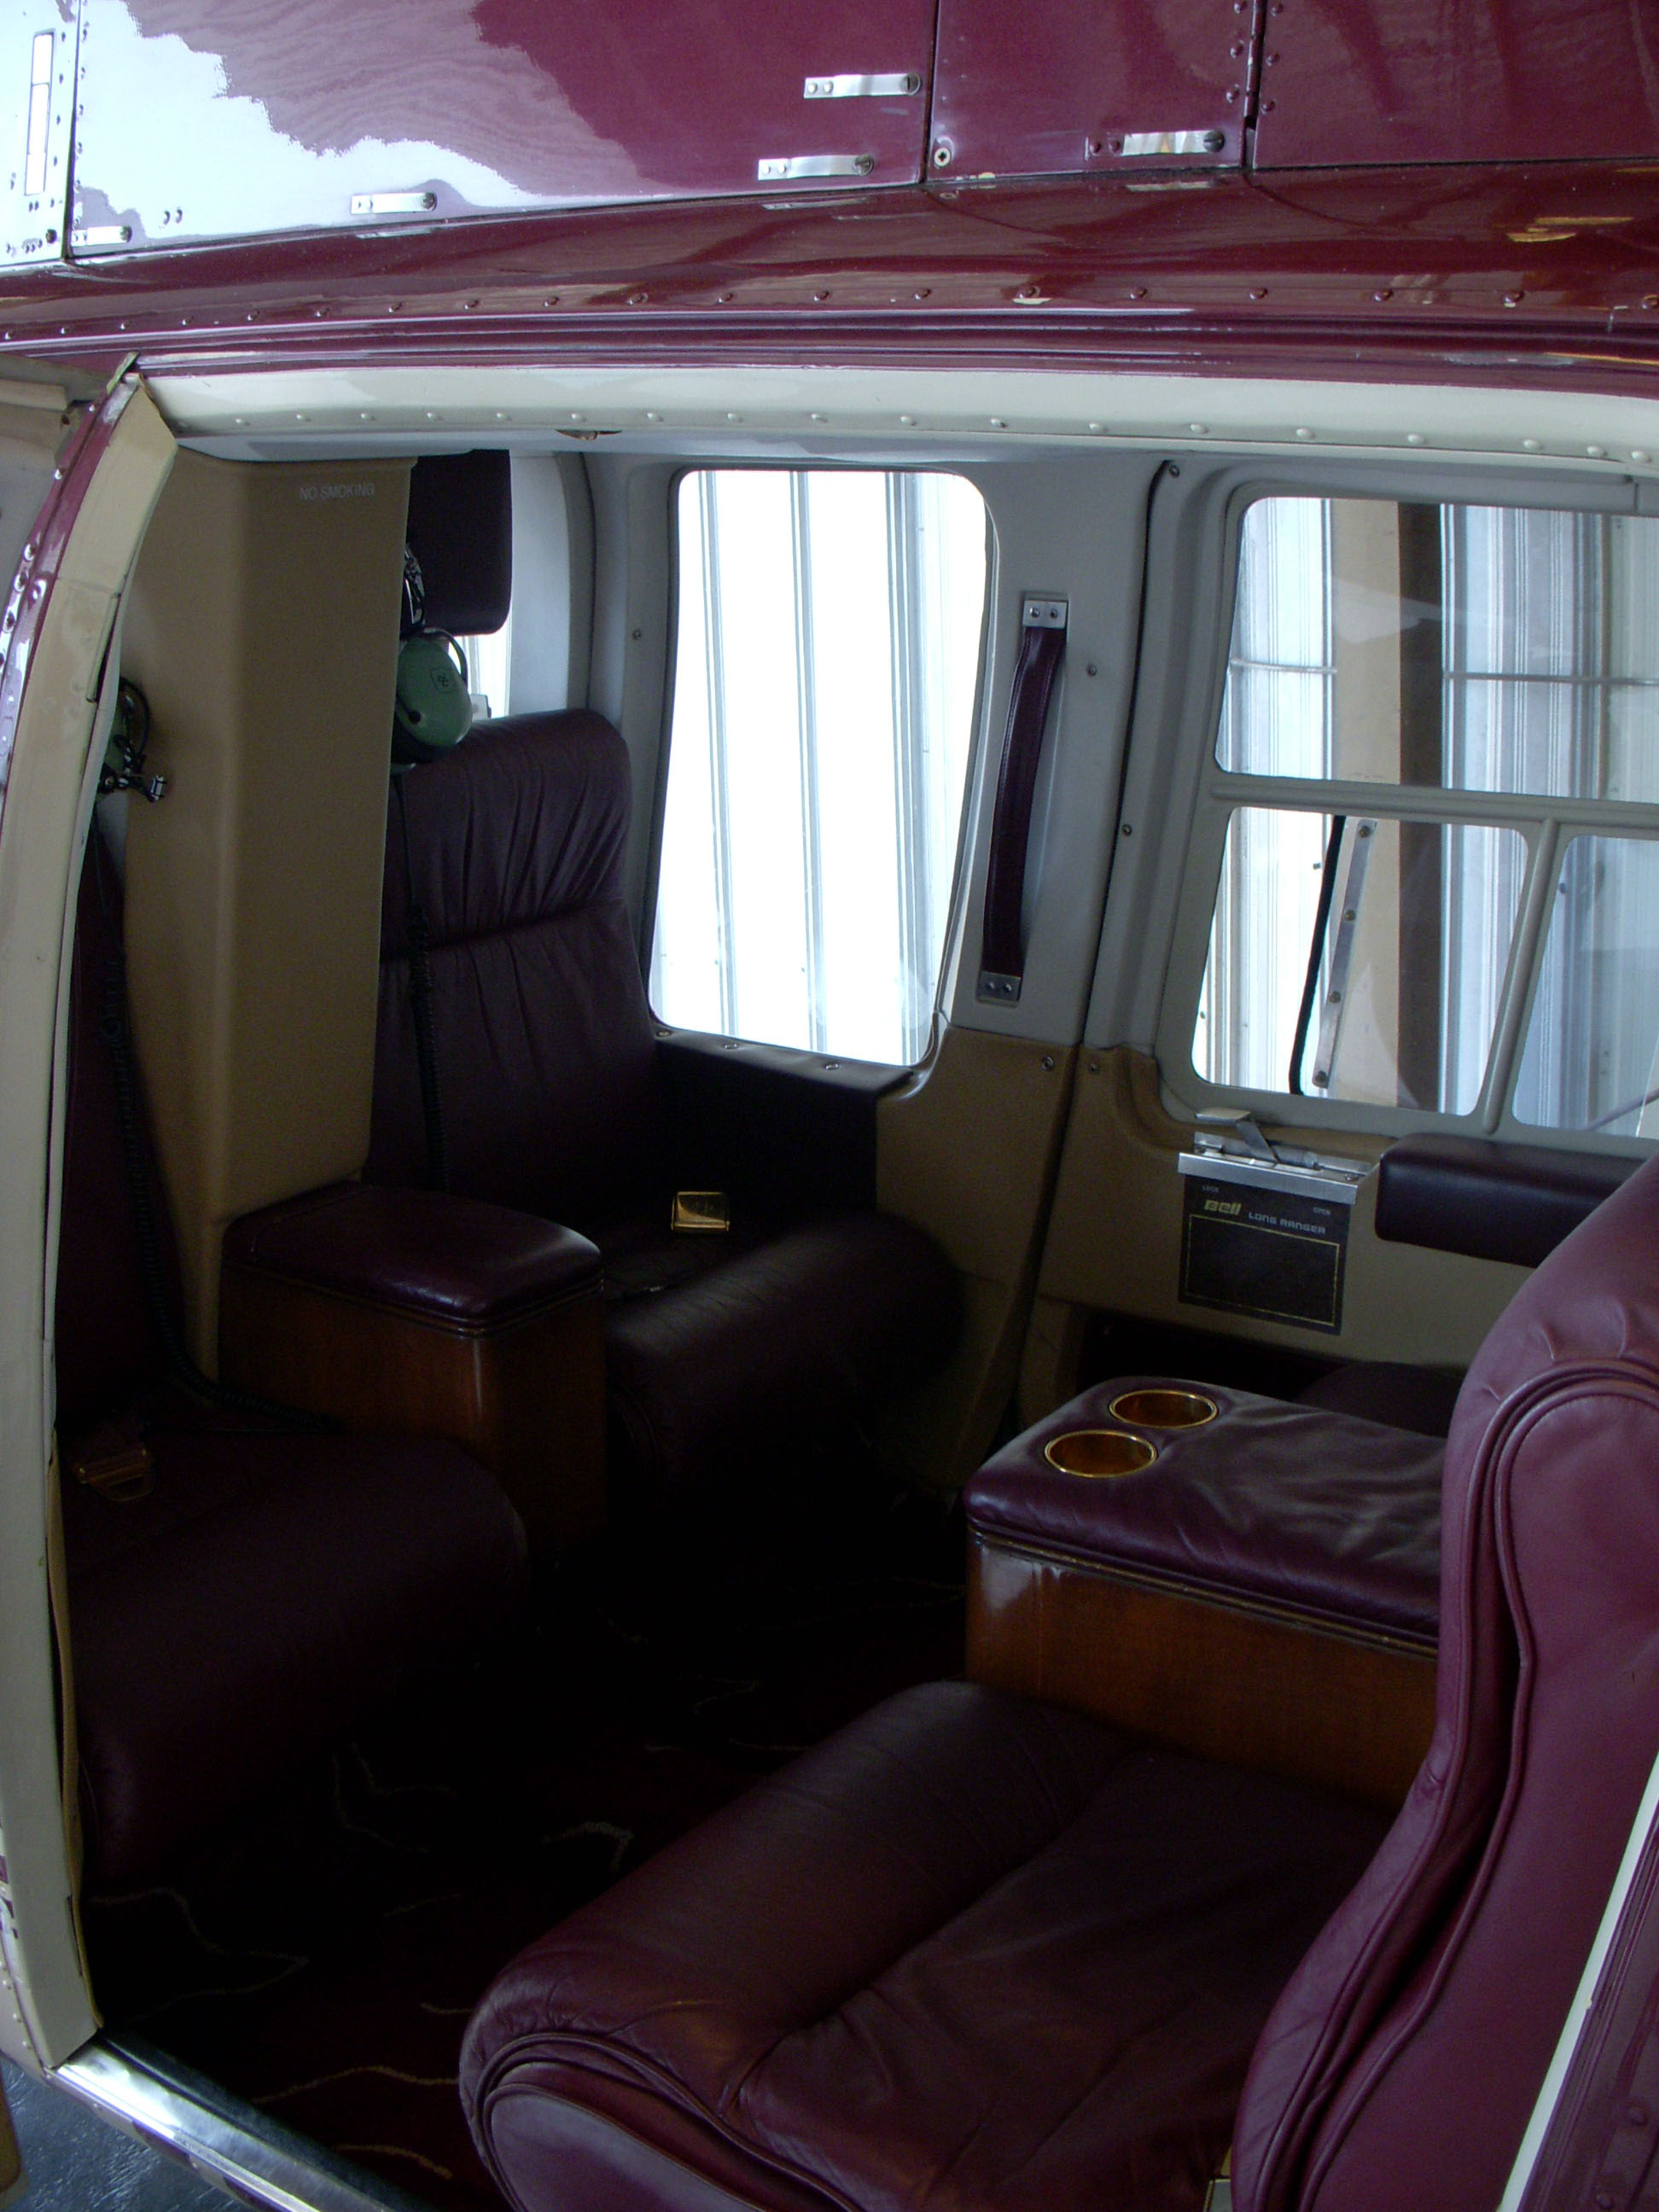 helicopter Interior appraisal